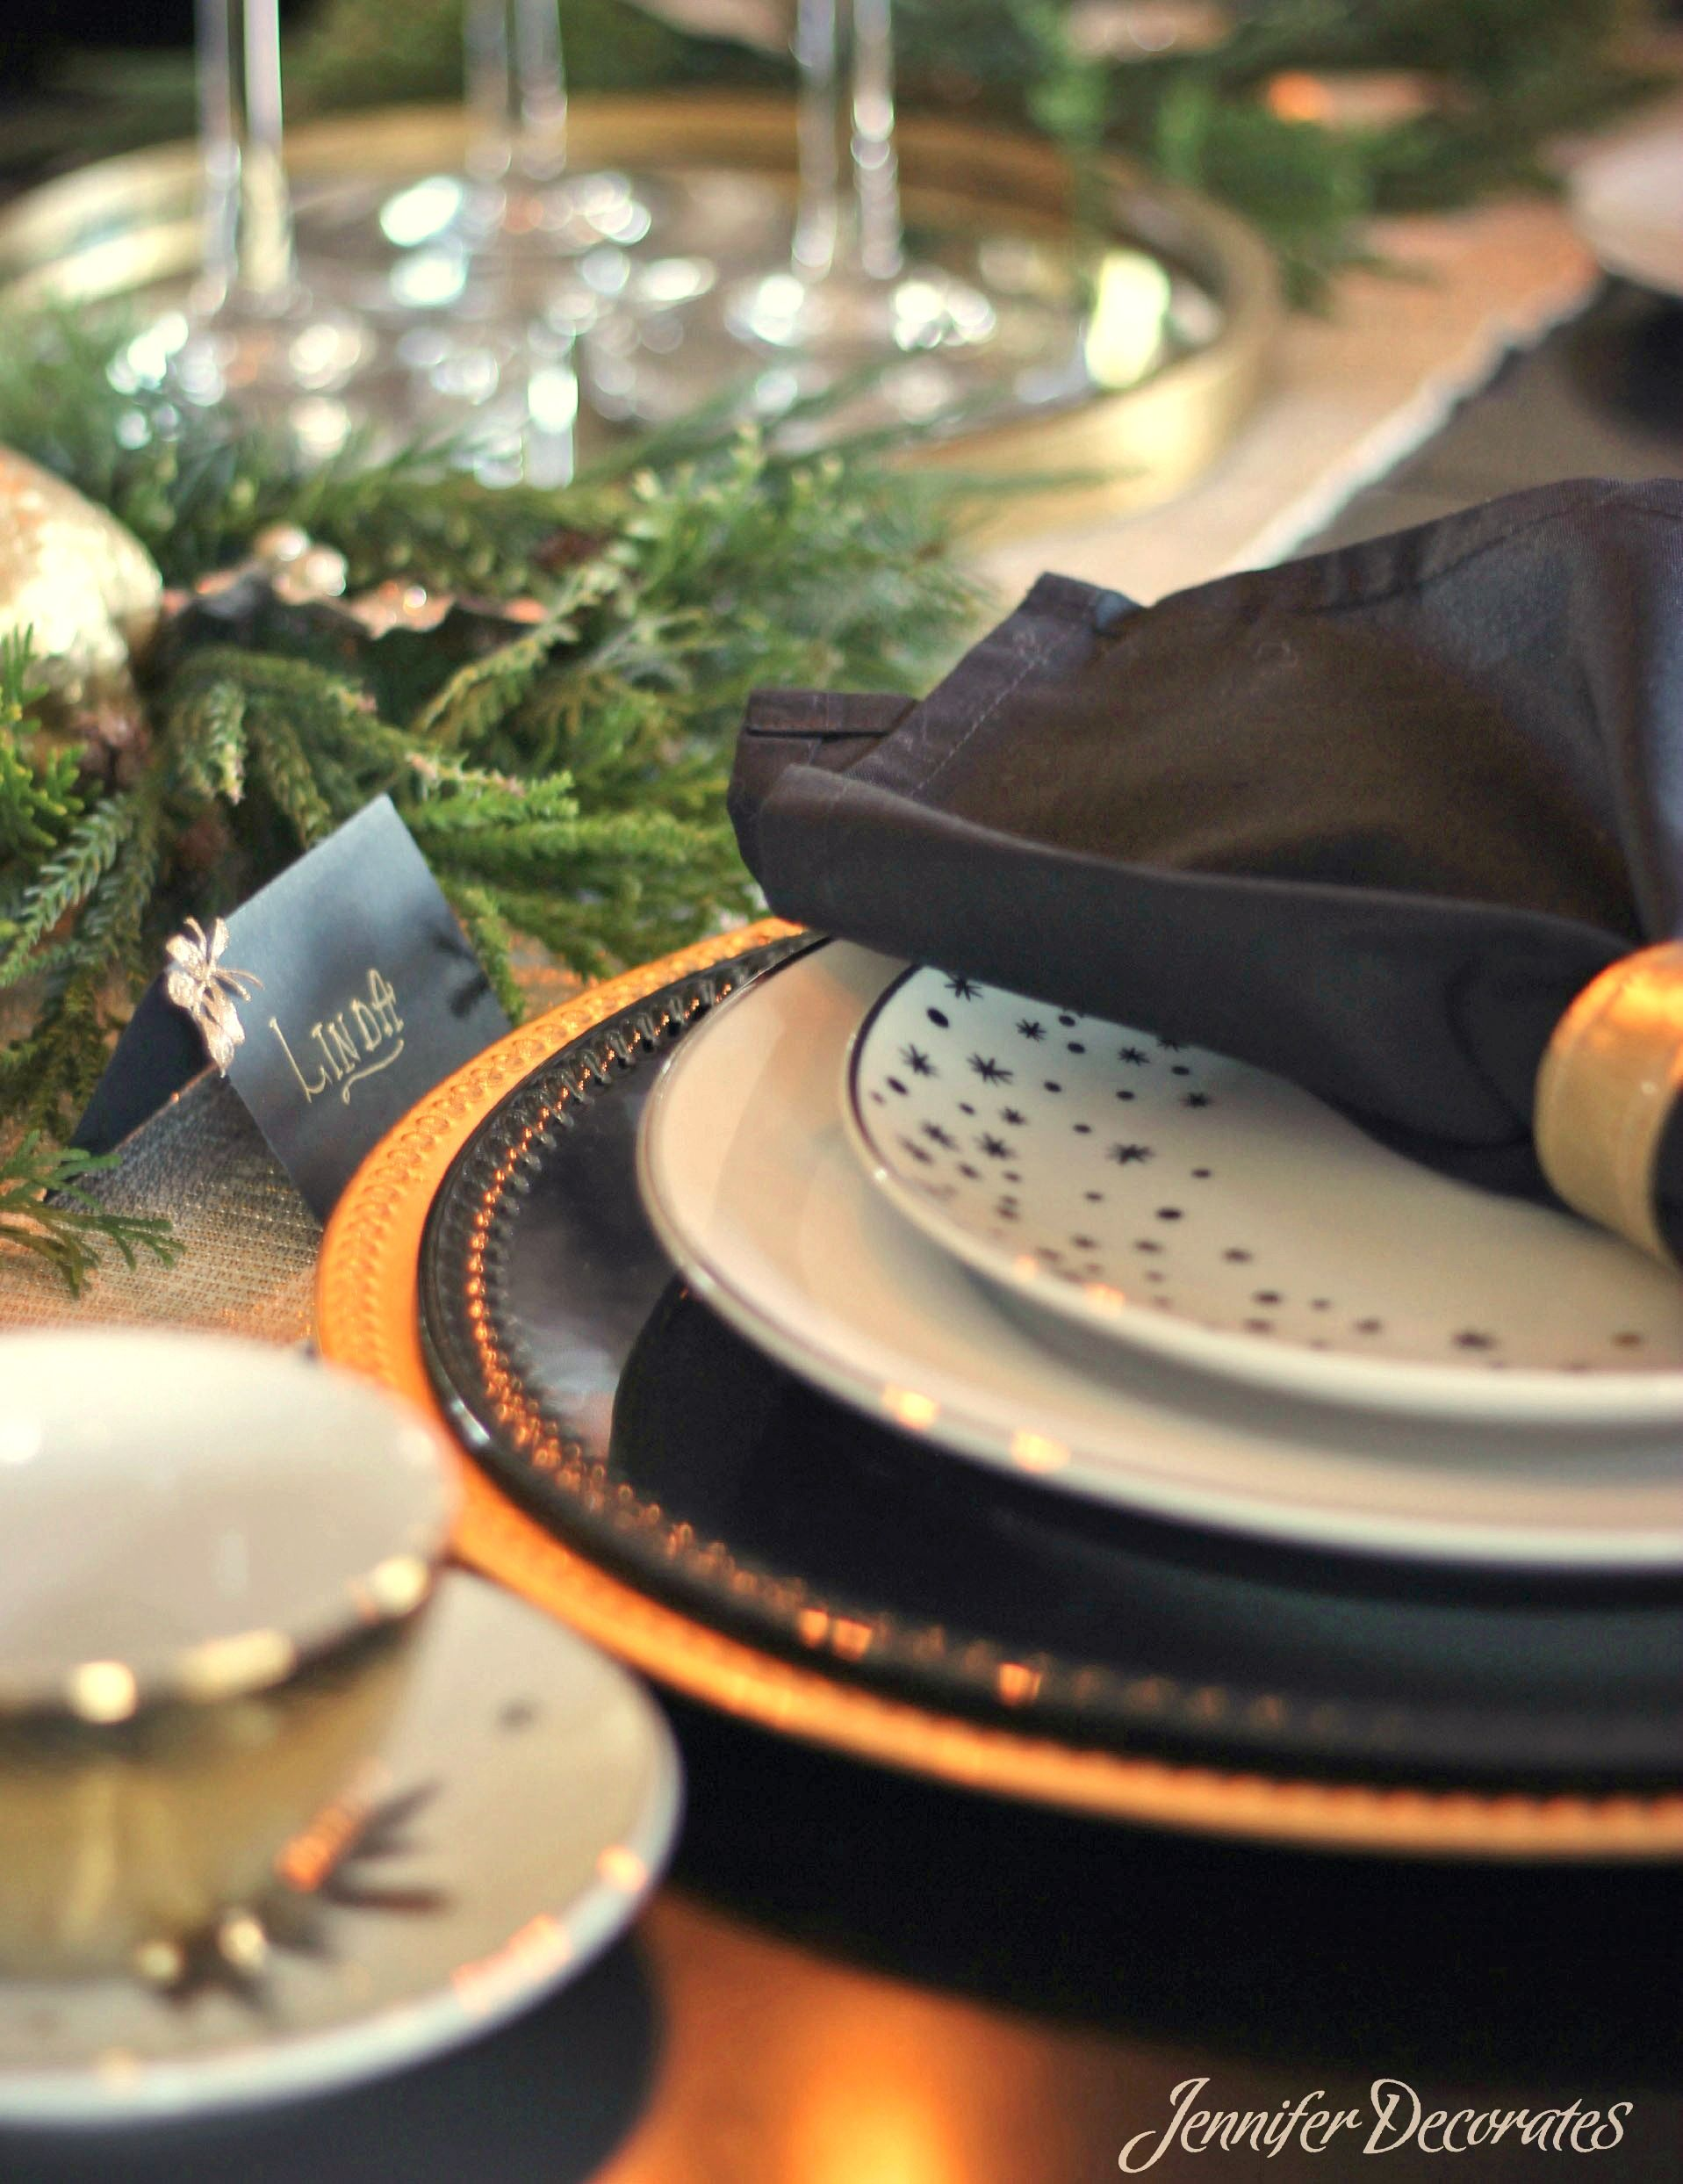 Christmas Table Setting Ideas That Are Simple and Elegant! Impress Family And Friends With These Easy Ideas Even On A Tight Christmas Budget!